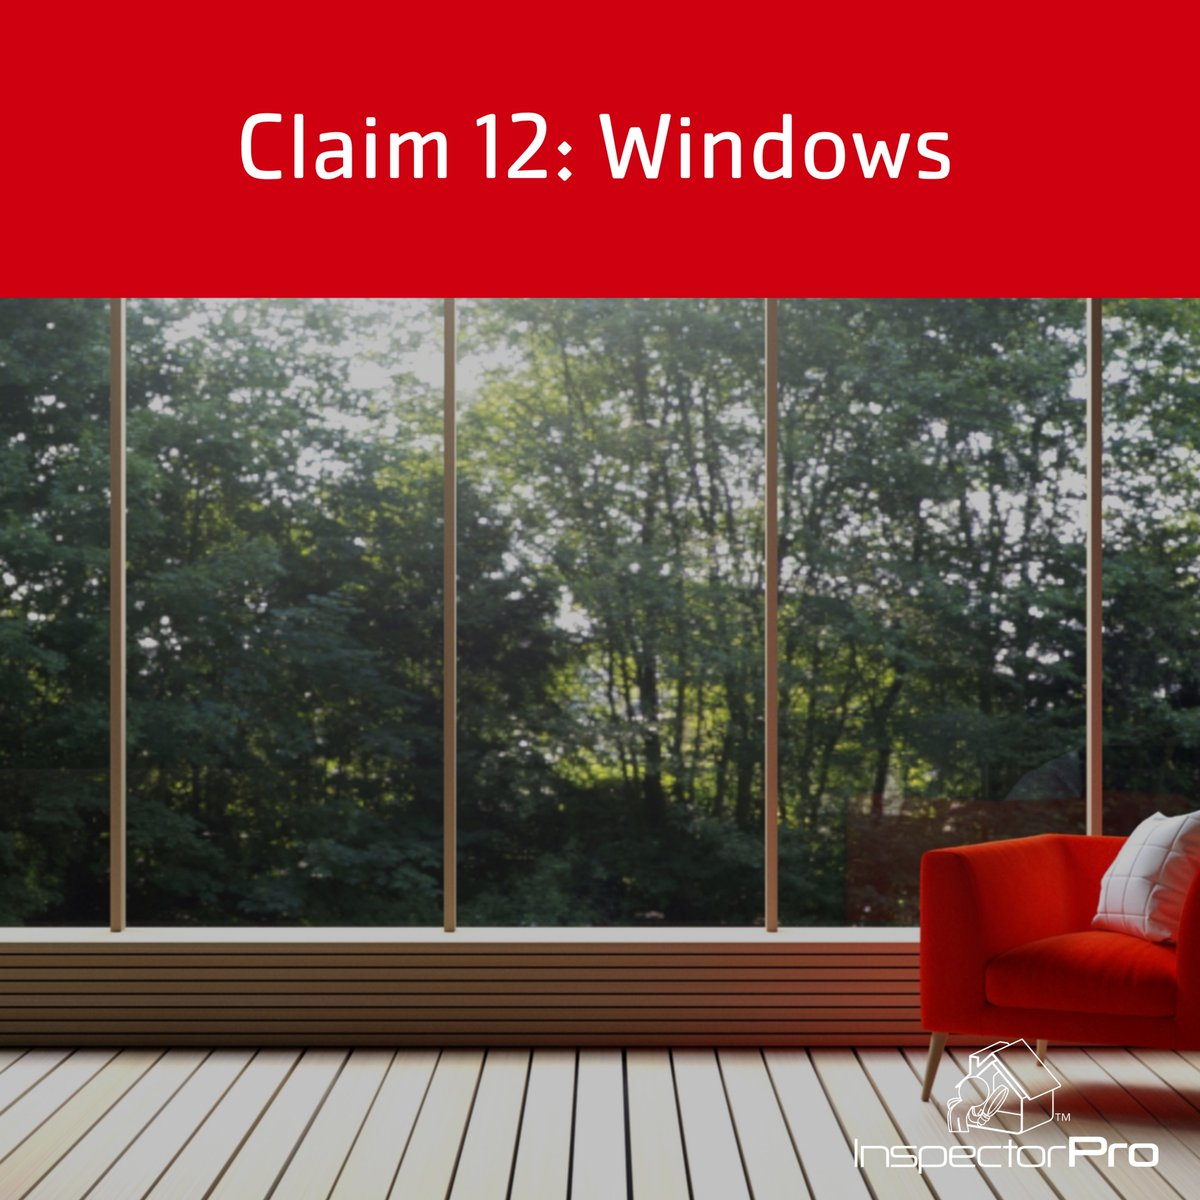 Which of these liability claims have you faced?